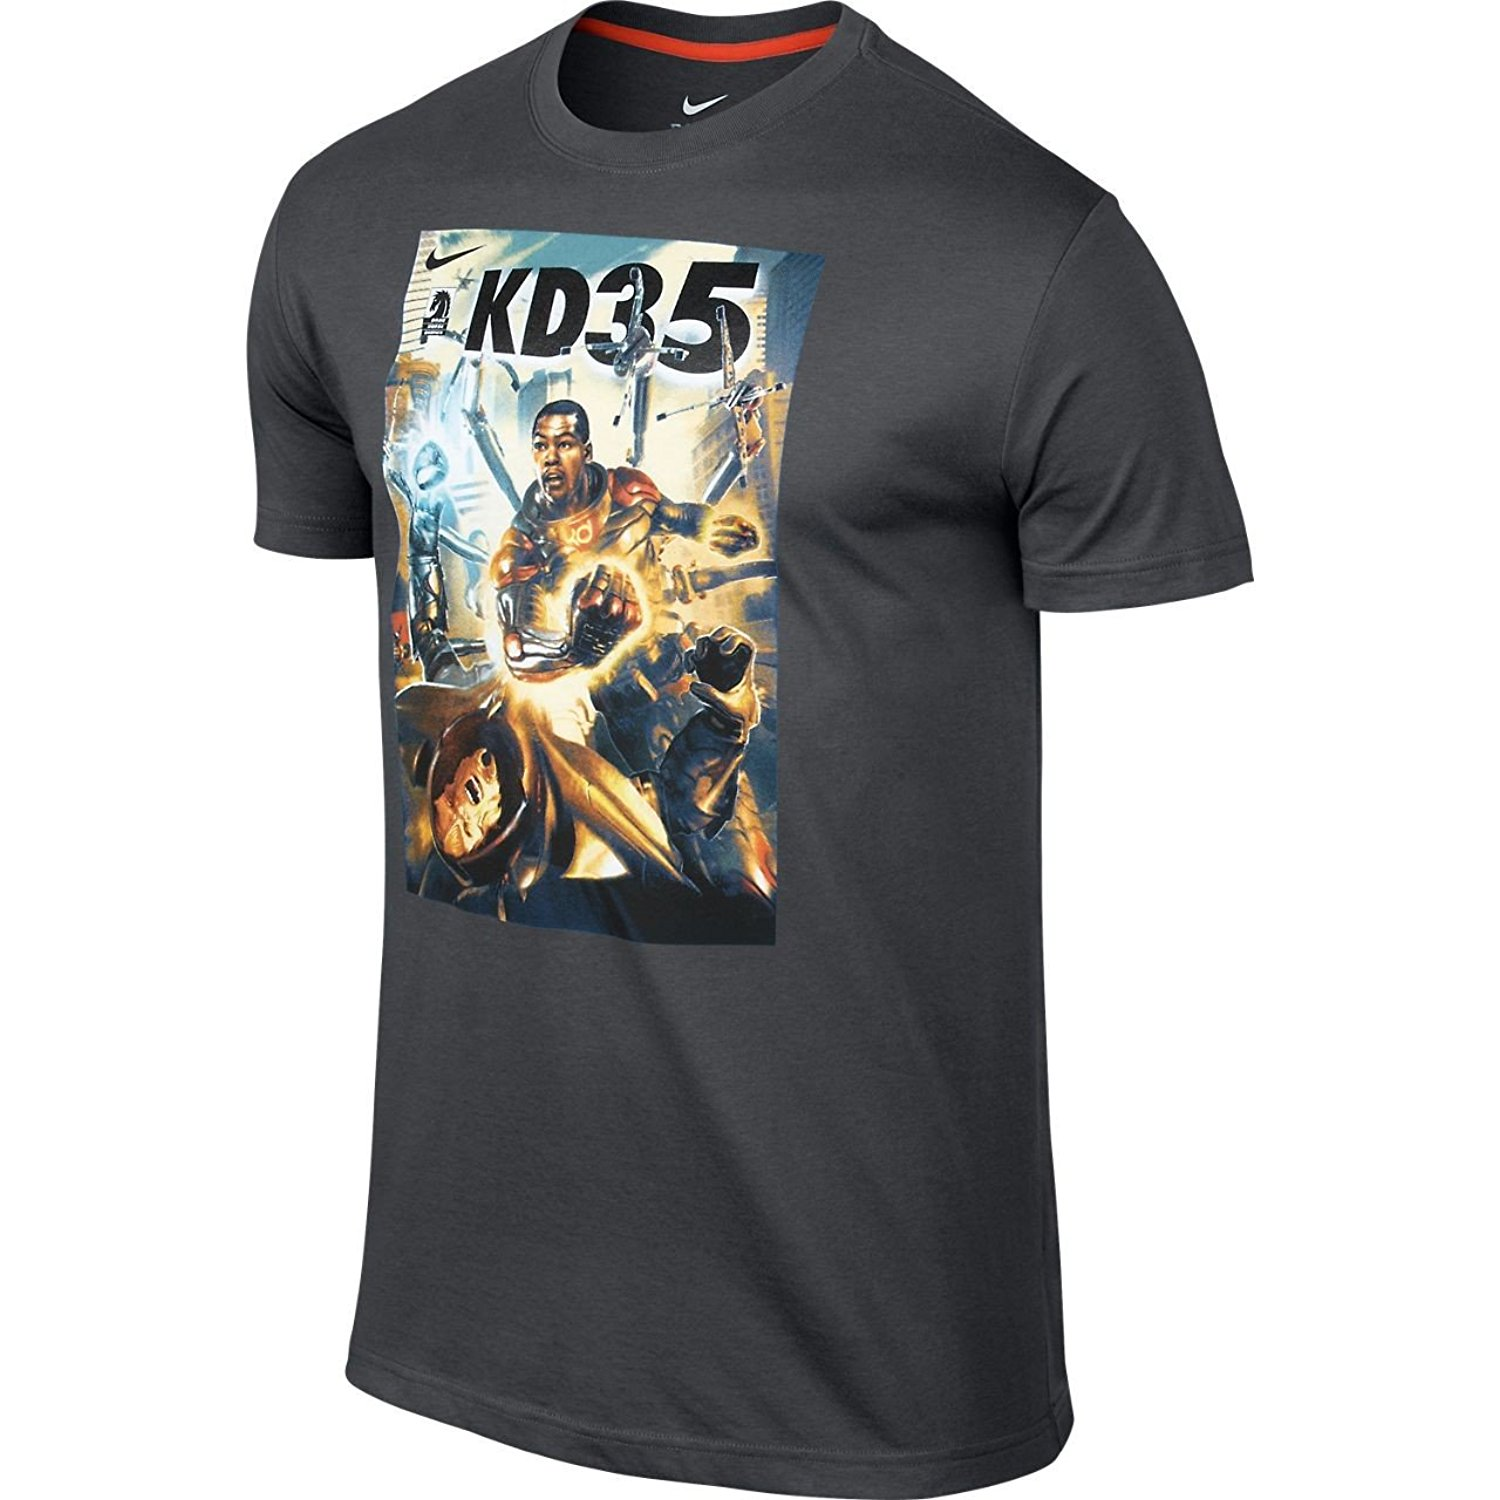 detailing babd4 6a6ea Get Quotations · Nike Mens KD Hero Comic Basketball Shirt Anthracite Gray  Kevin Durant